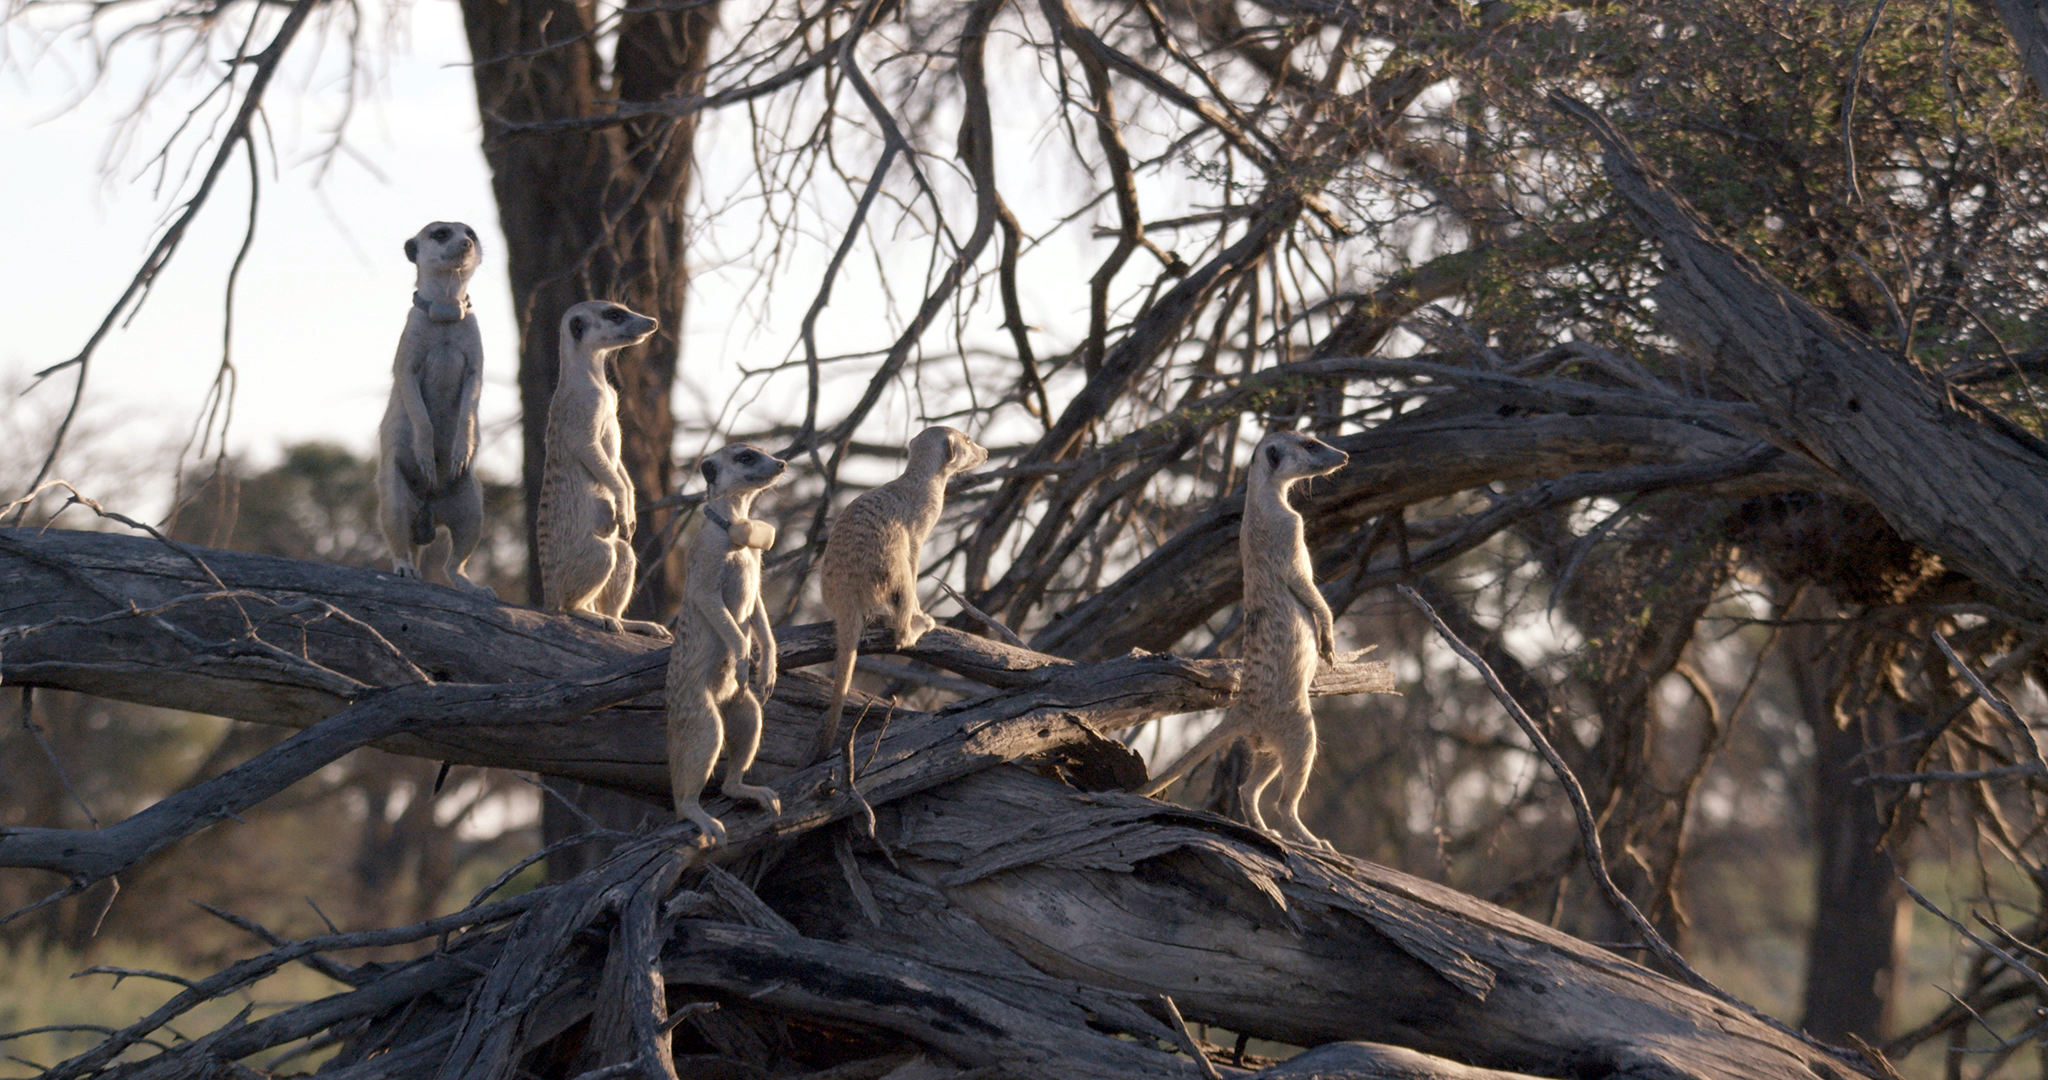 five meerkats stand on a branch look towards the right, two have collars on them